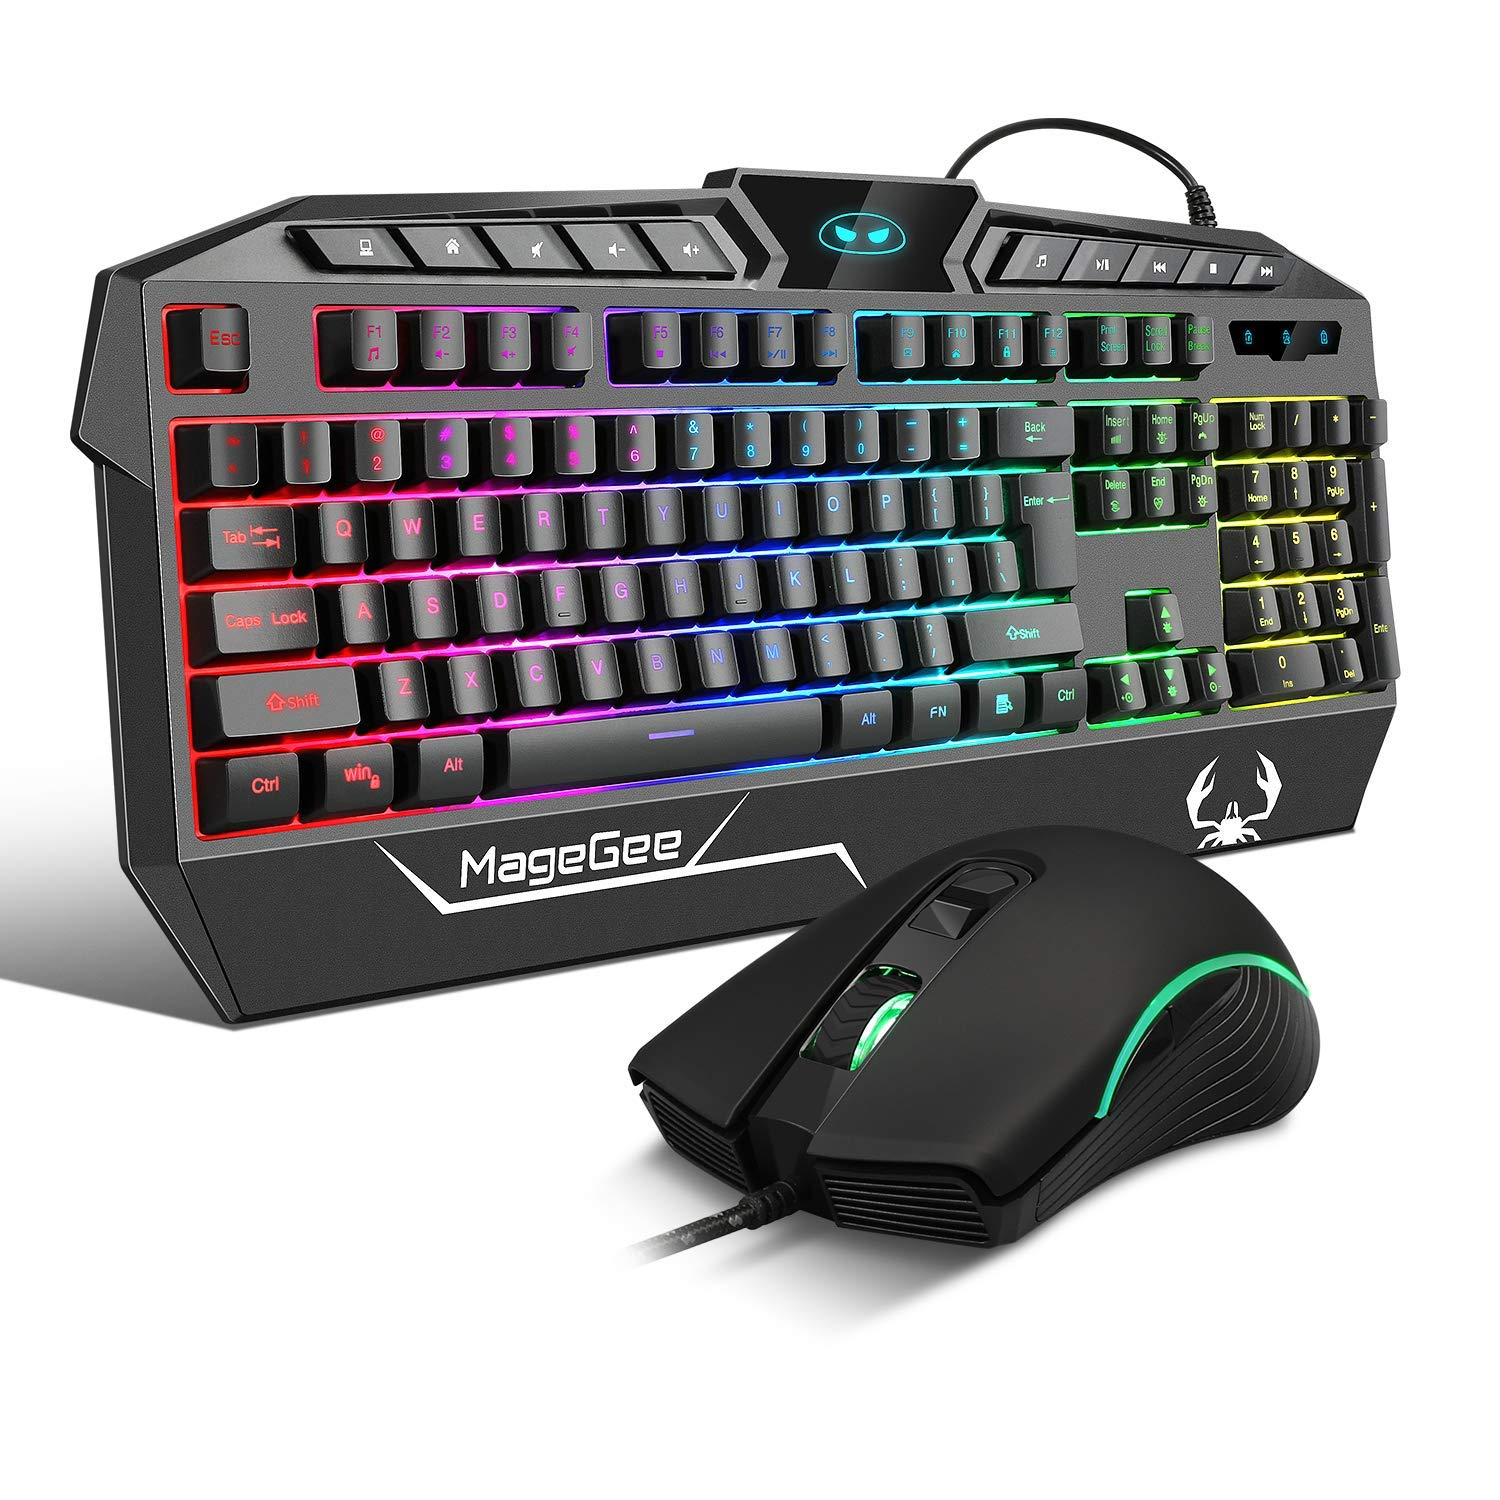 RGB Gaming Keyboard and Mouse Combo,104 Keys Gaming Keyboard Mechanical Feeling with 10 Multimedia Keys,Wired Ergonomic Wrist Rest Keyboard and Adjustable DPI Gaming Mouse for PC Mac Laptop Office